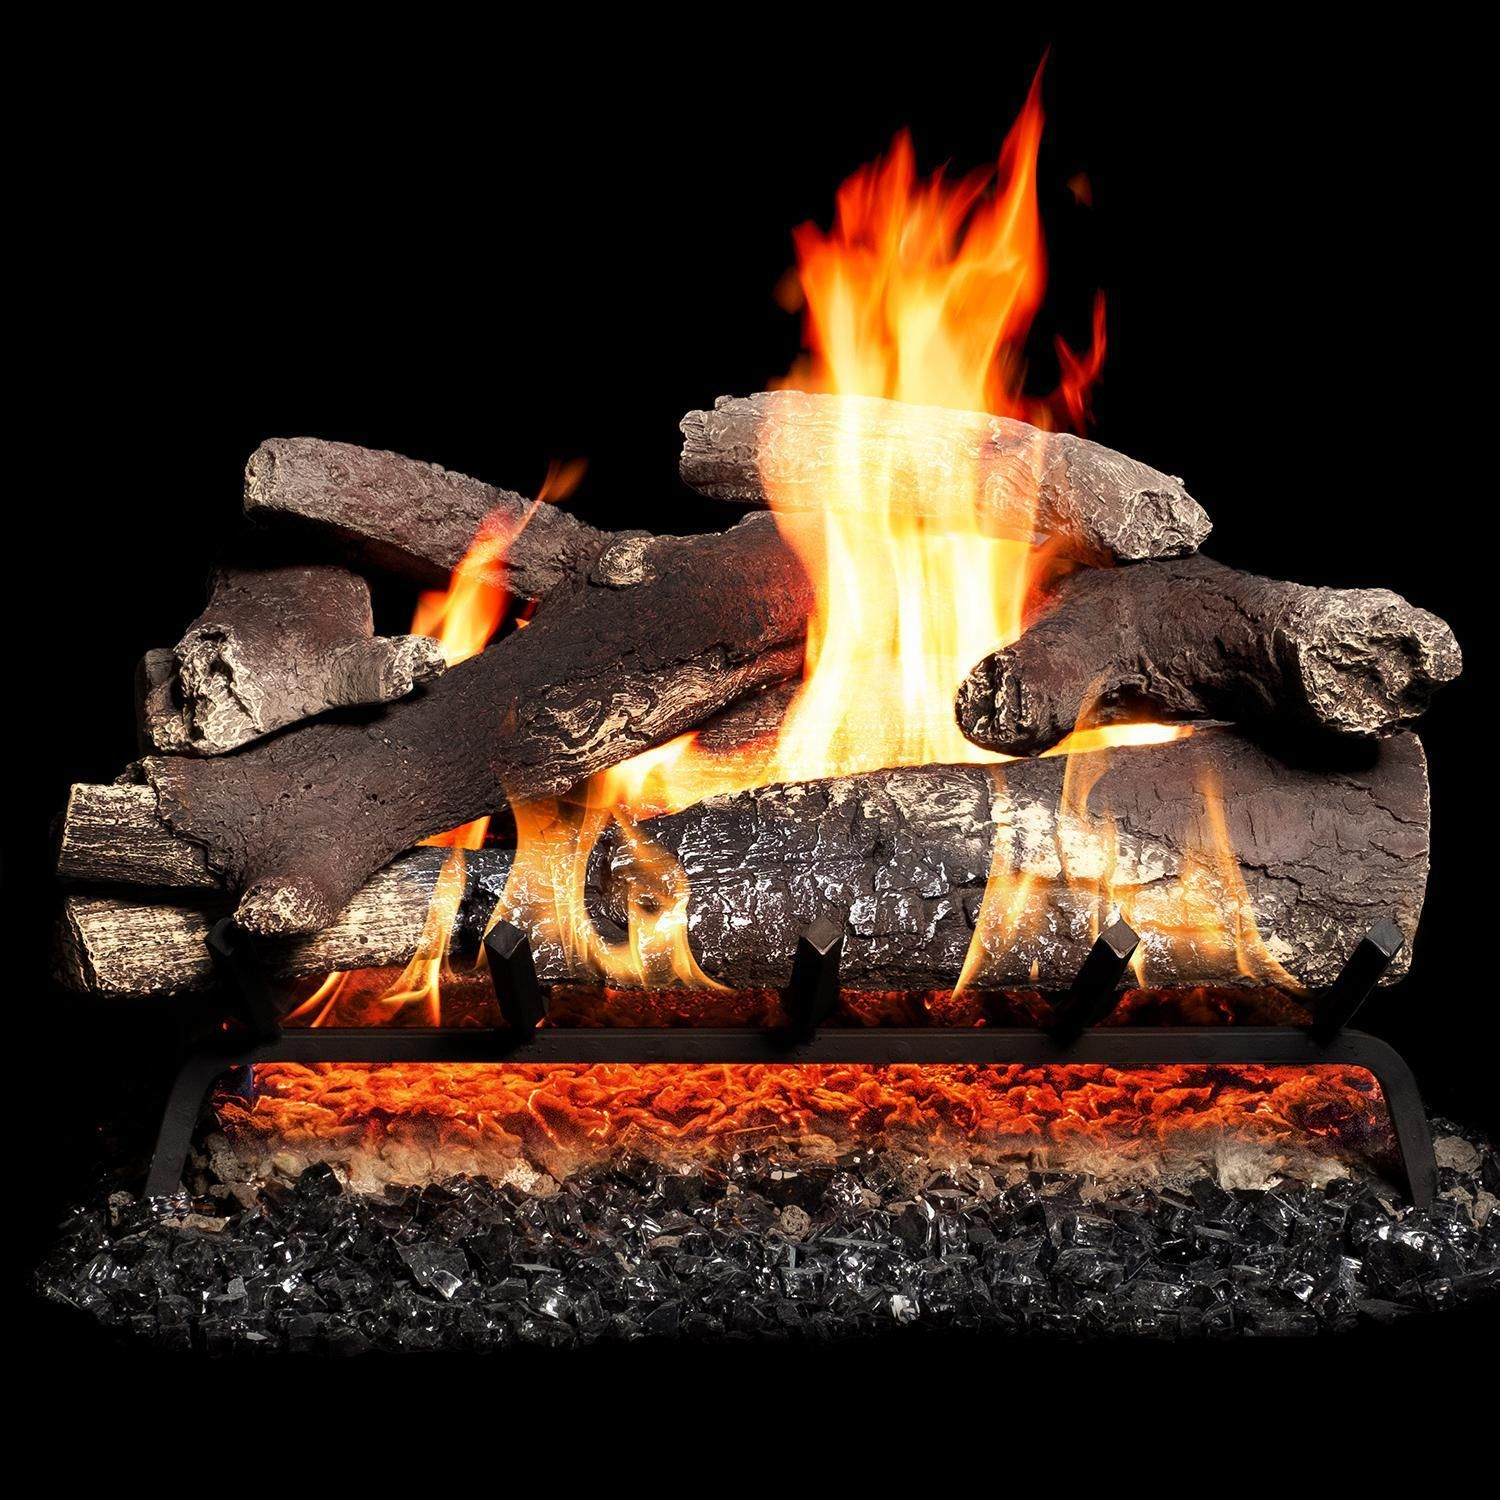 Nothing Creates A Warm Ambiance In Your Home Quite Like Wood Burning In The Fireplace Gaslogguys Combines The Look